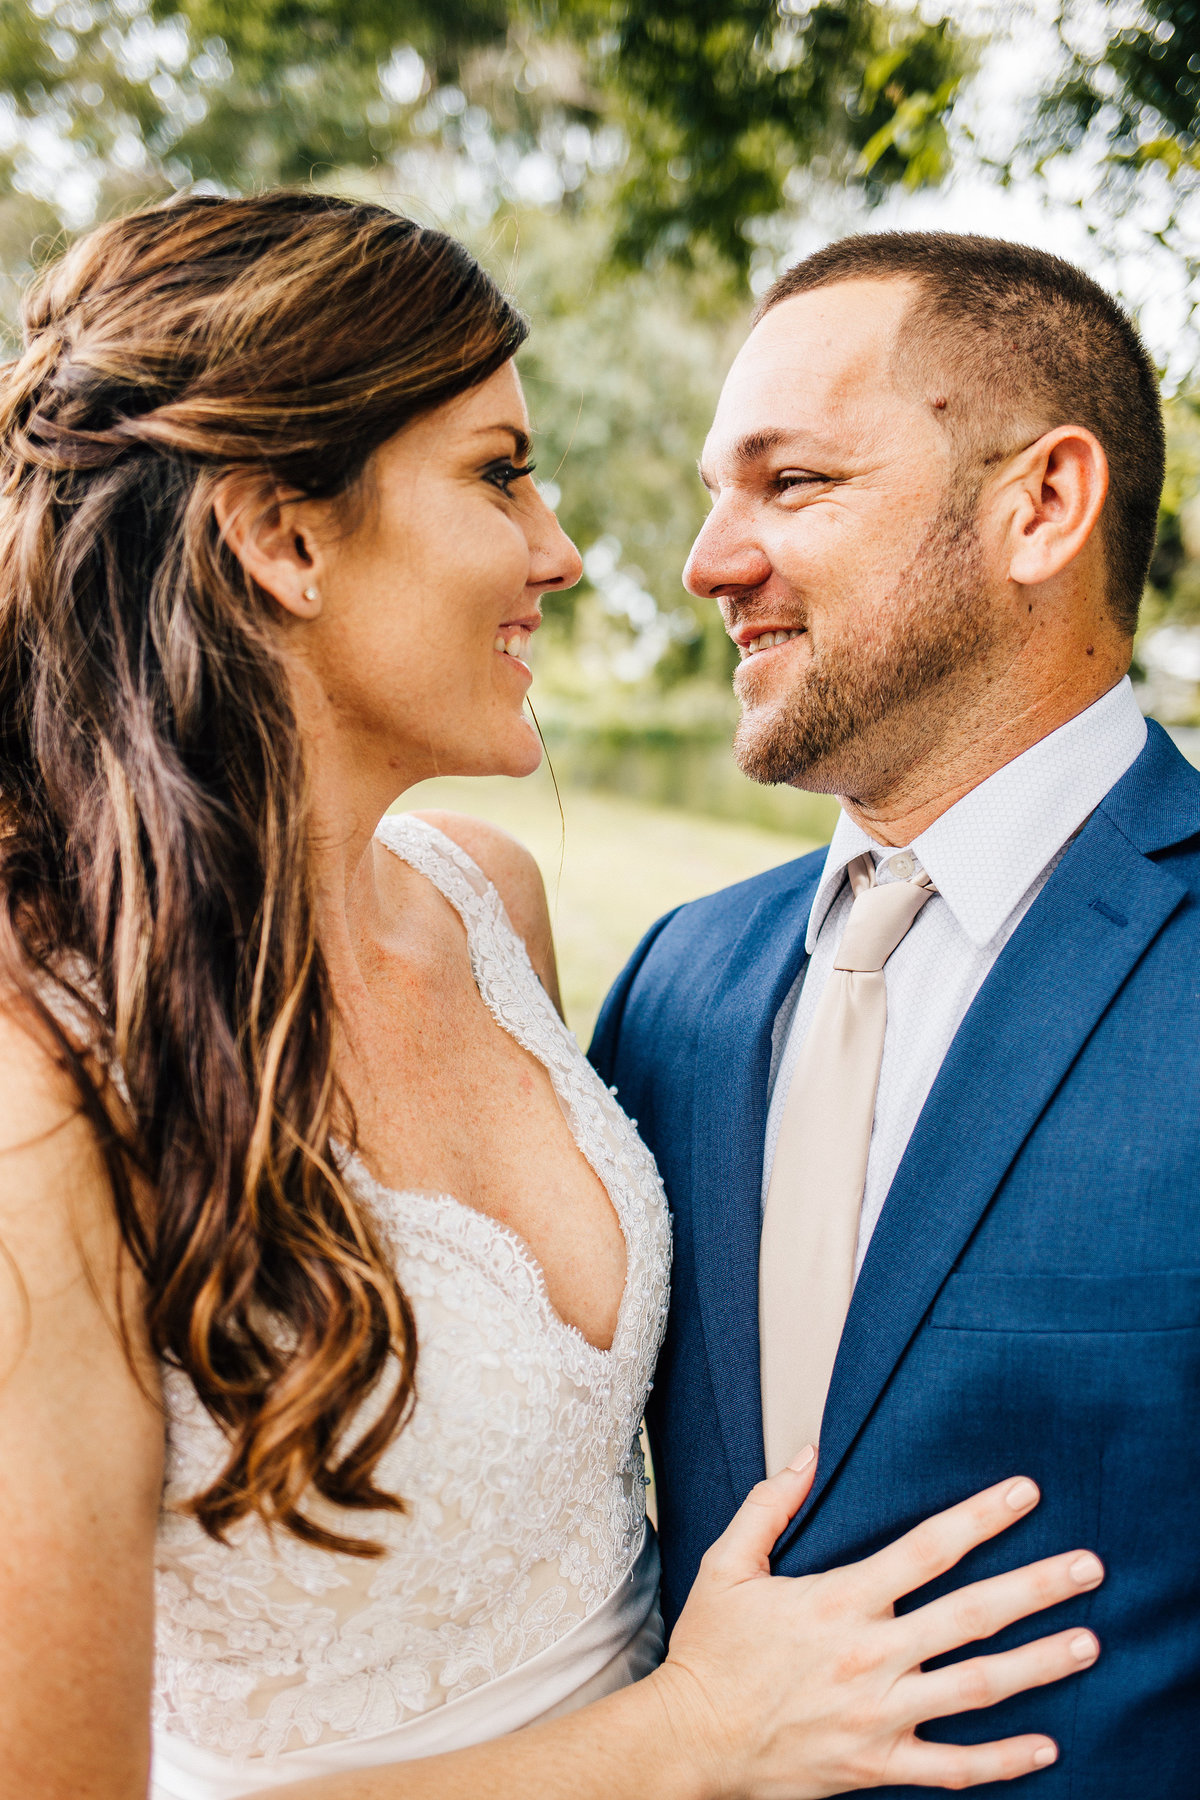 Kimberly_Hoyle_Photography_Kemp_Titusville_Florida_Wedding-8